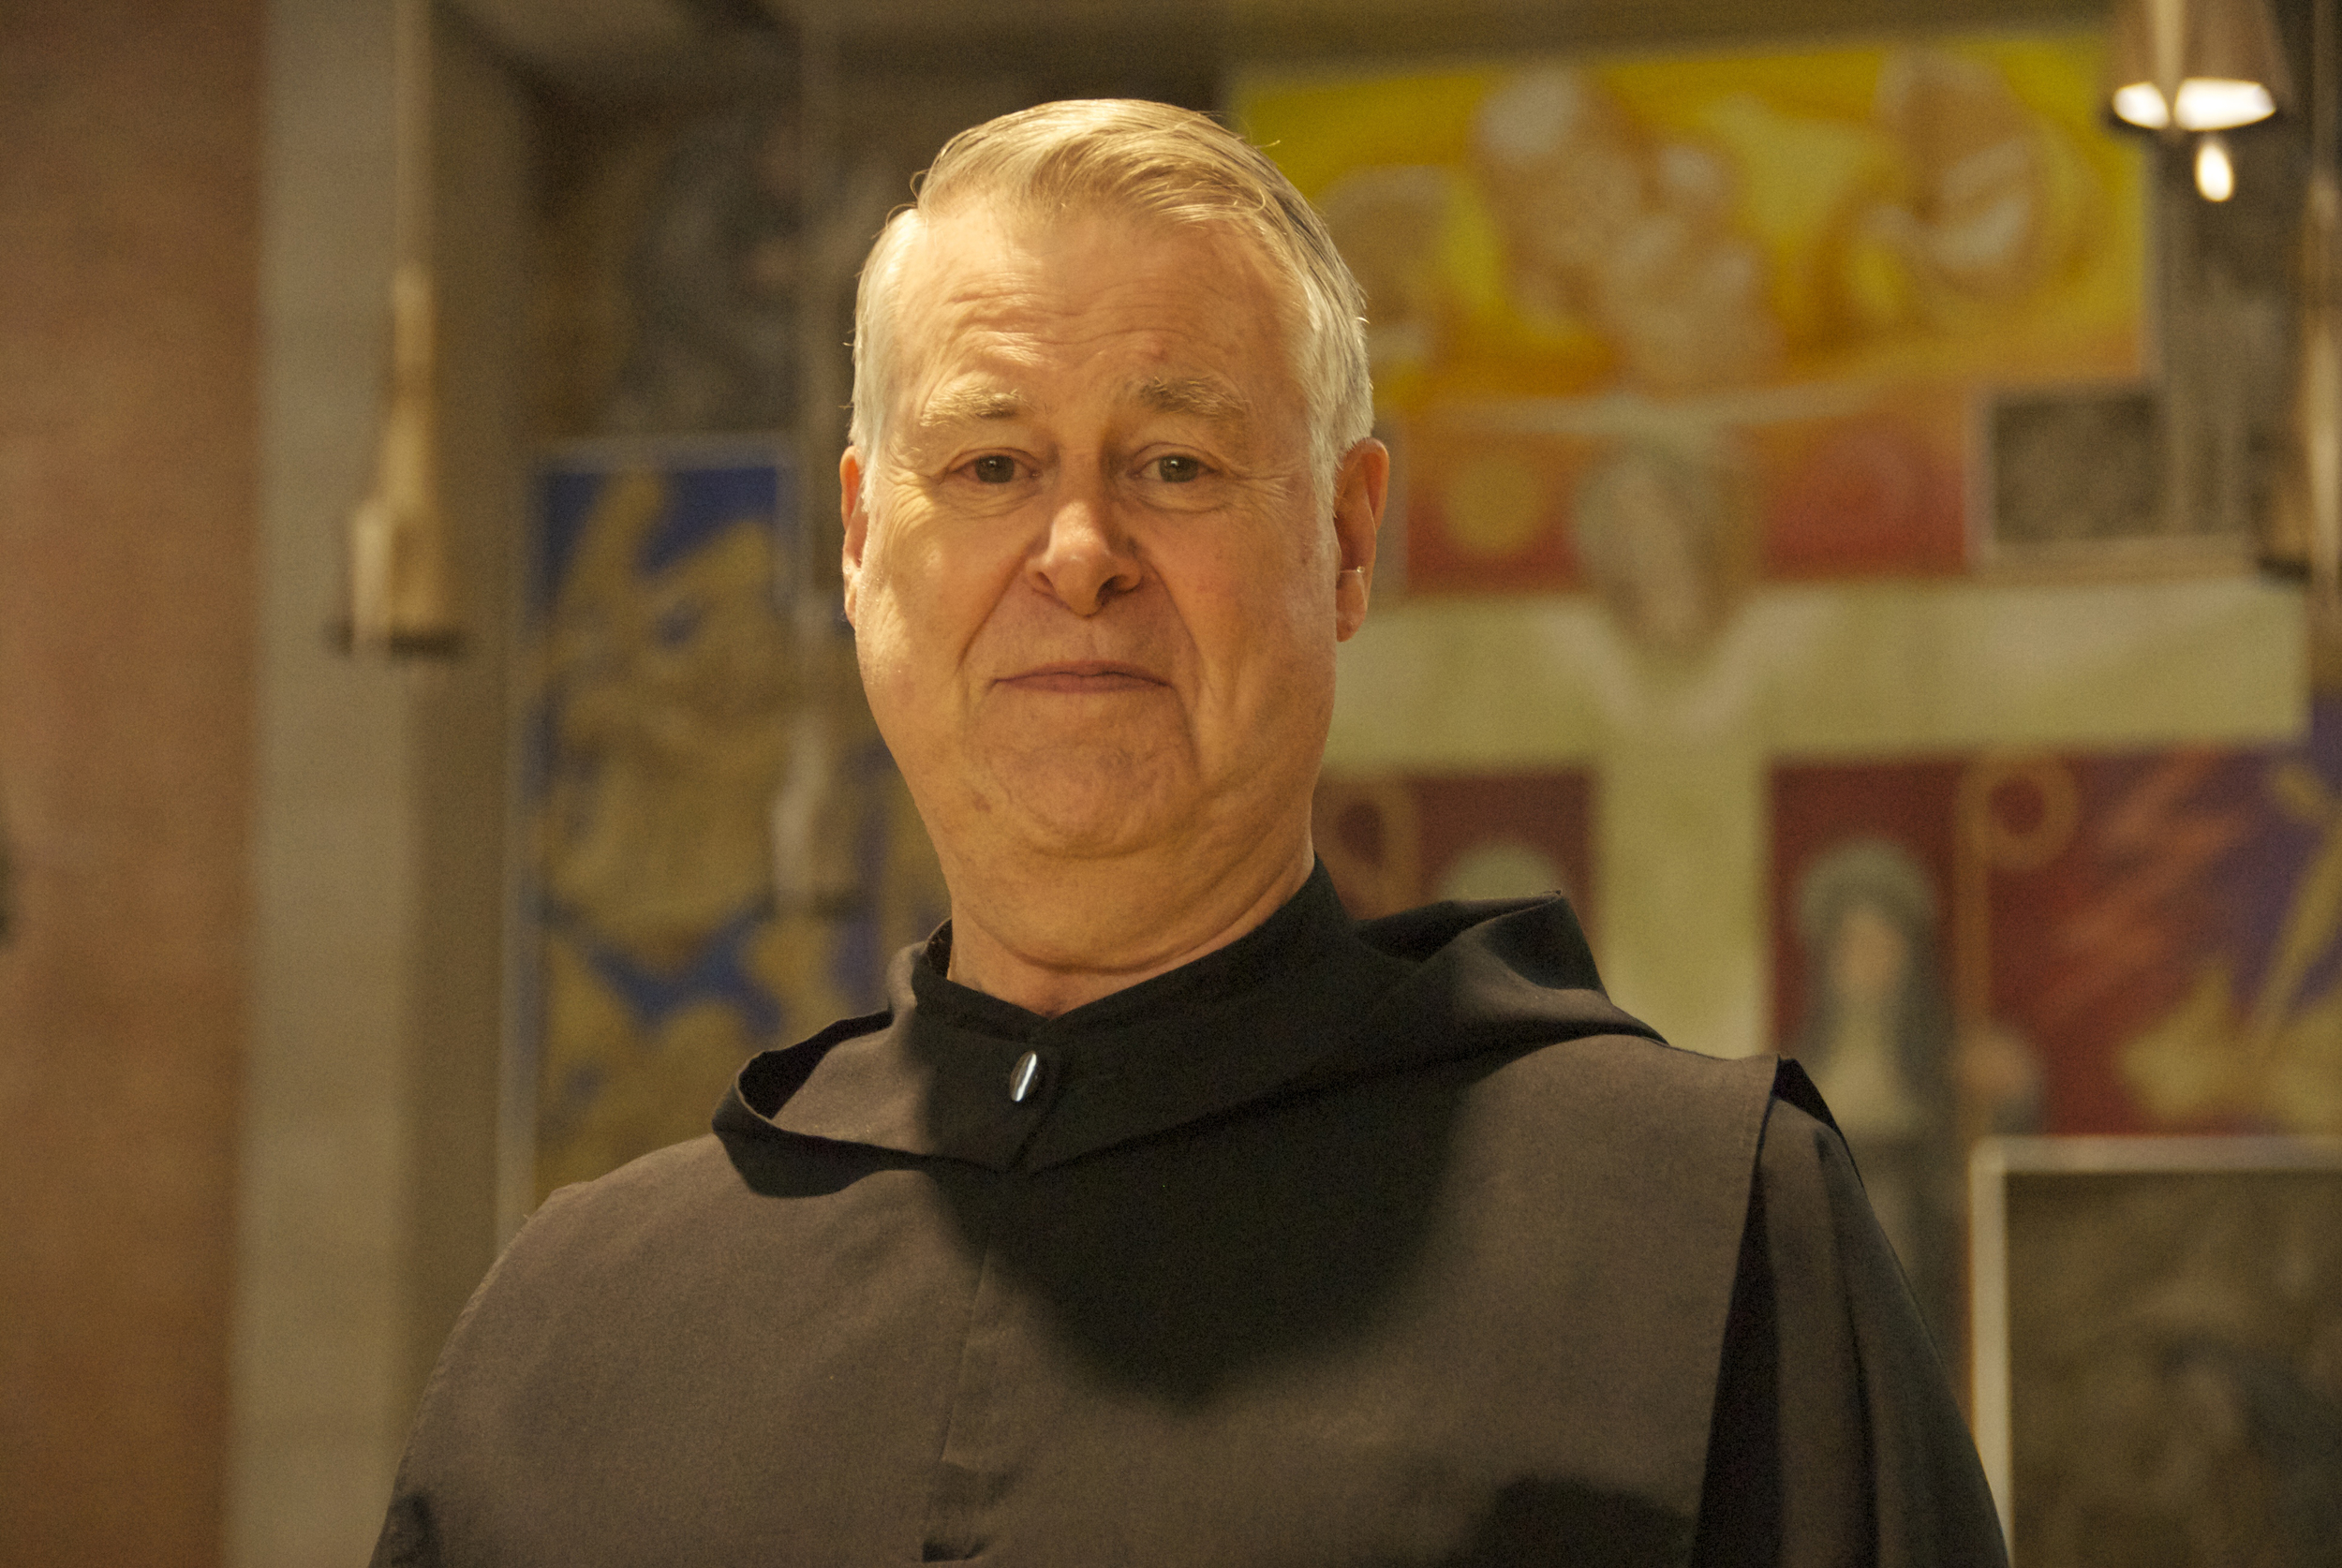 Fr. Matthew Habiger - 53 Years